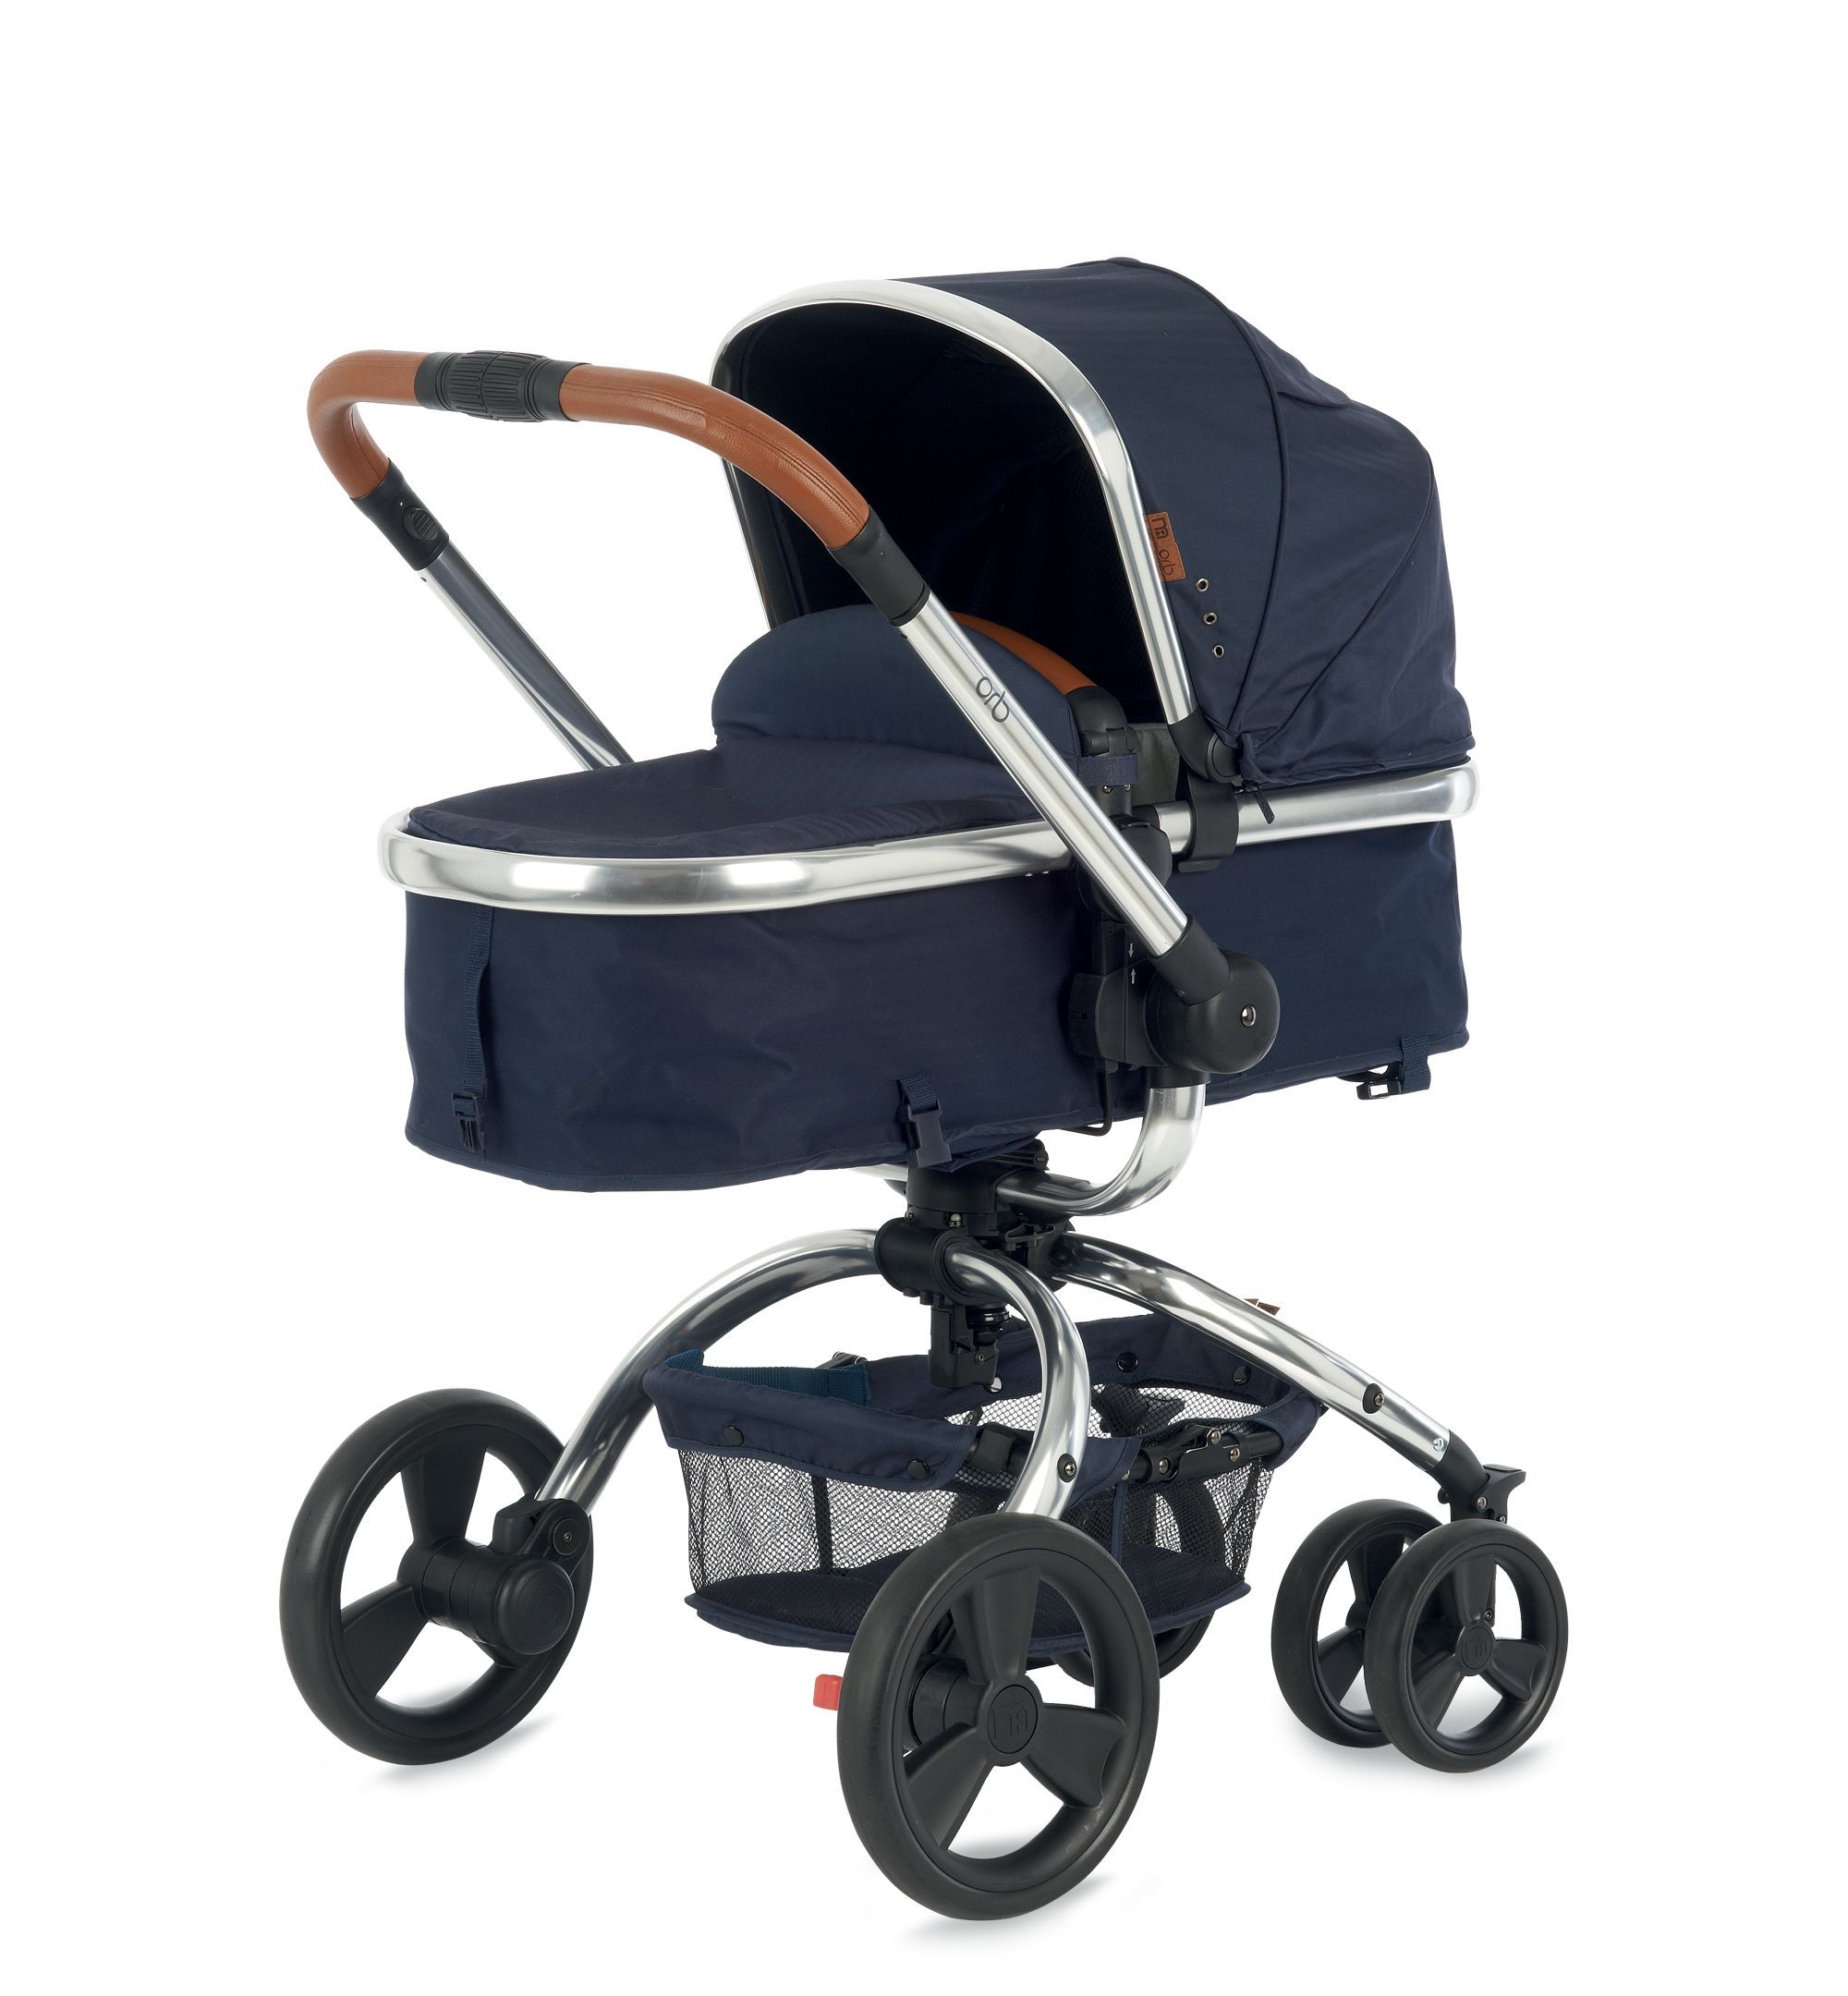 nursery bedding Orb pram, Babies and Baby strollers